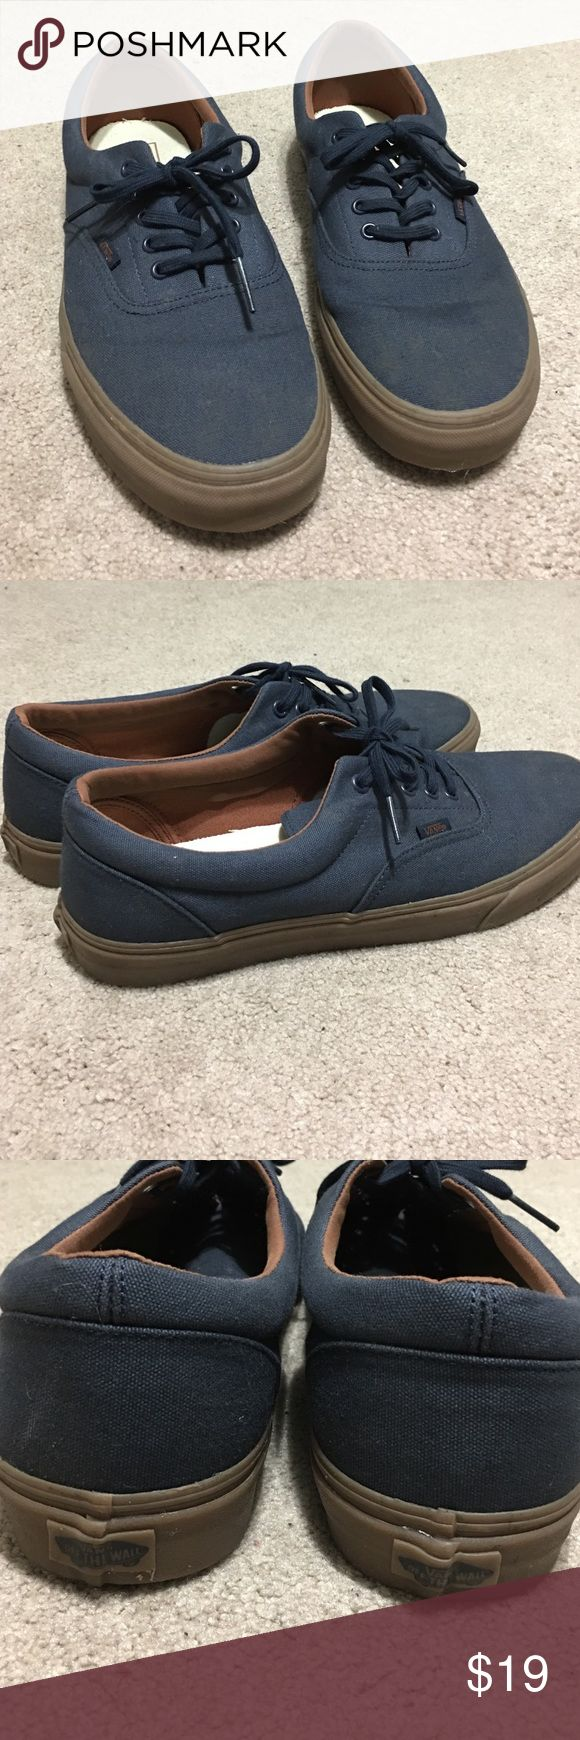 Cool vans shoes! Used but in decent condition. Dark blue with gum bottom! Vans Shoes Sneakers